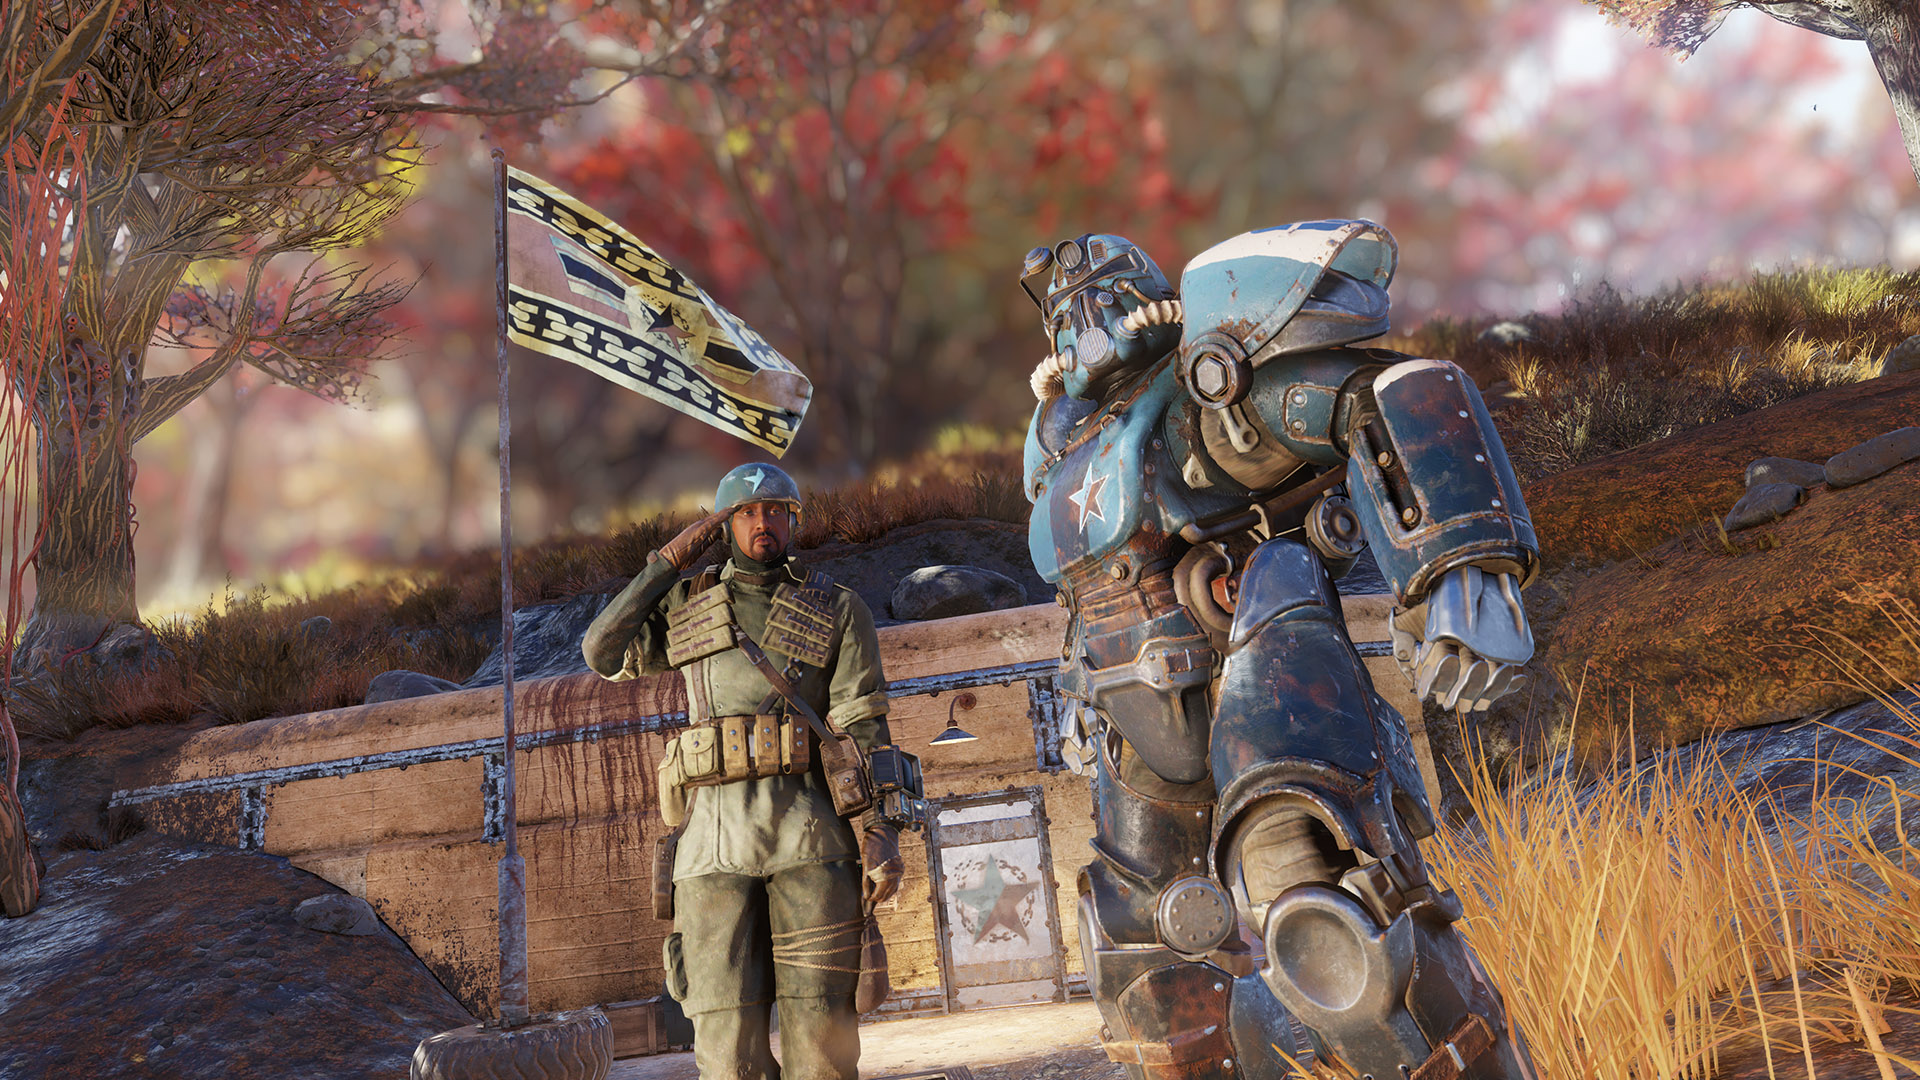 Fallout 76 | Atomic Shop: Patch 11 Items and Sales (July 23)